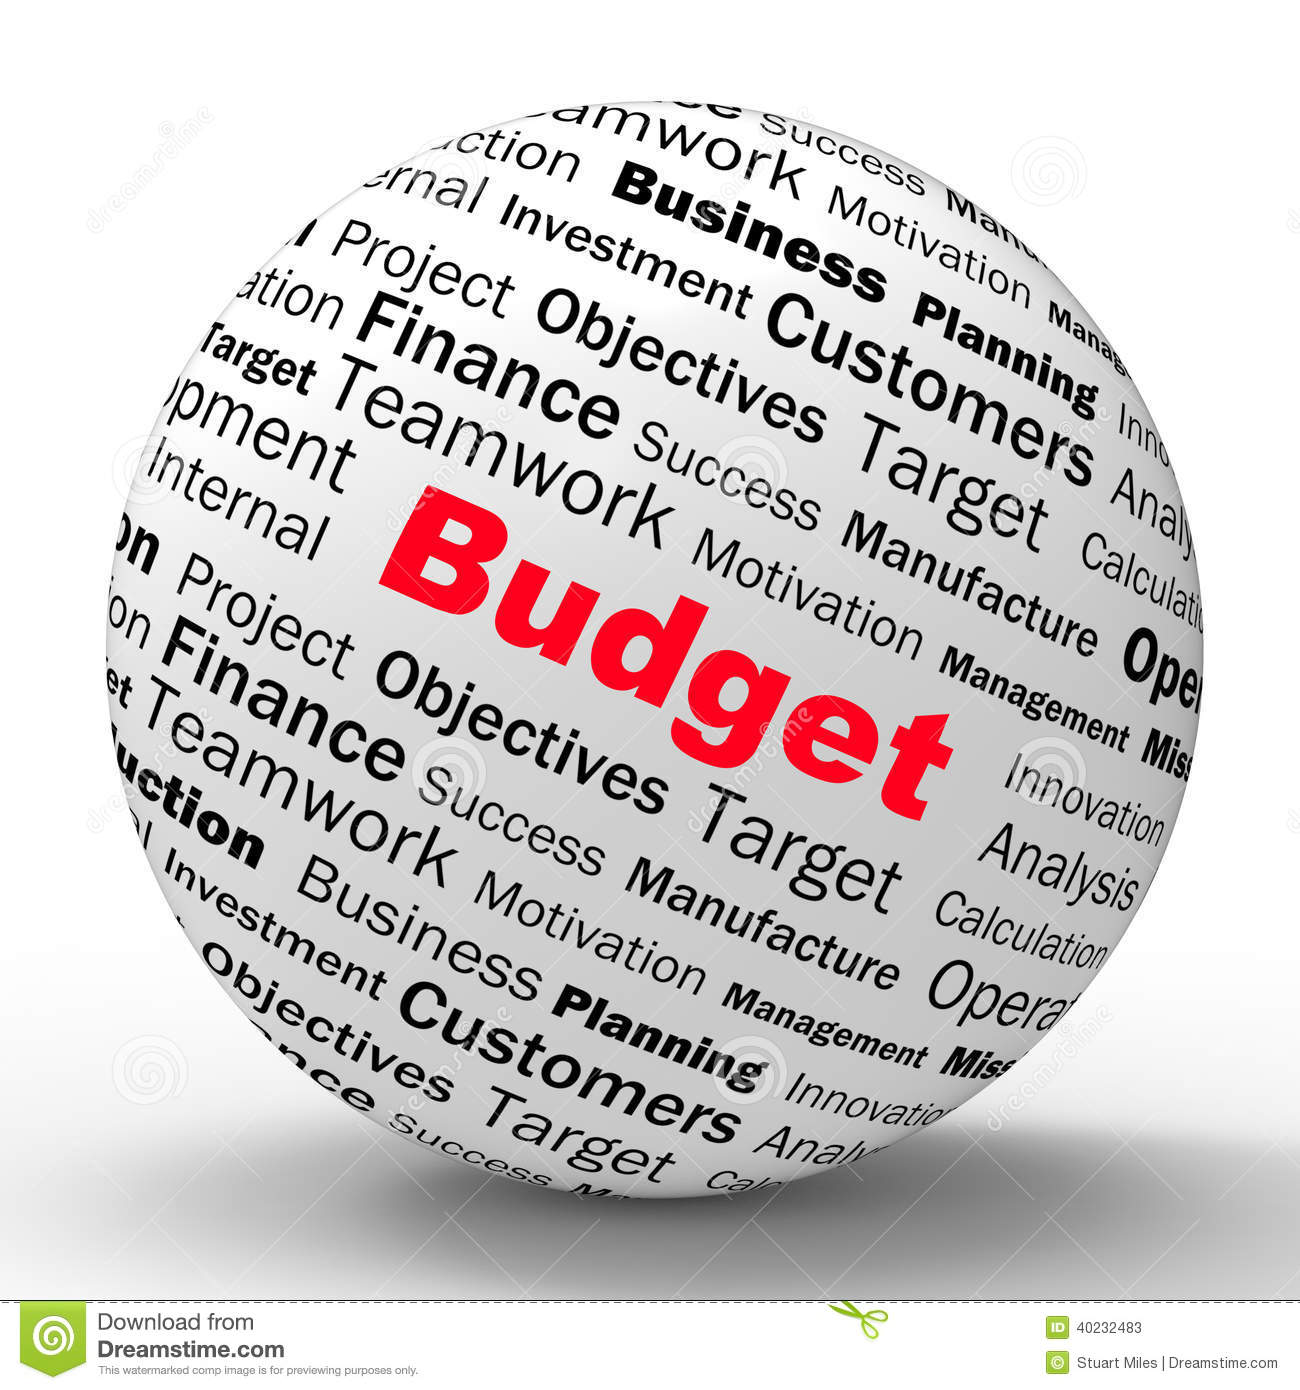 managerial budgeting This is one of over 2,200 courses on ocw find materials for this course in the pages linked along the left mit opencourseware is a free & open publication of.